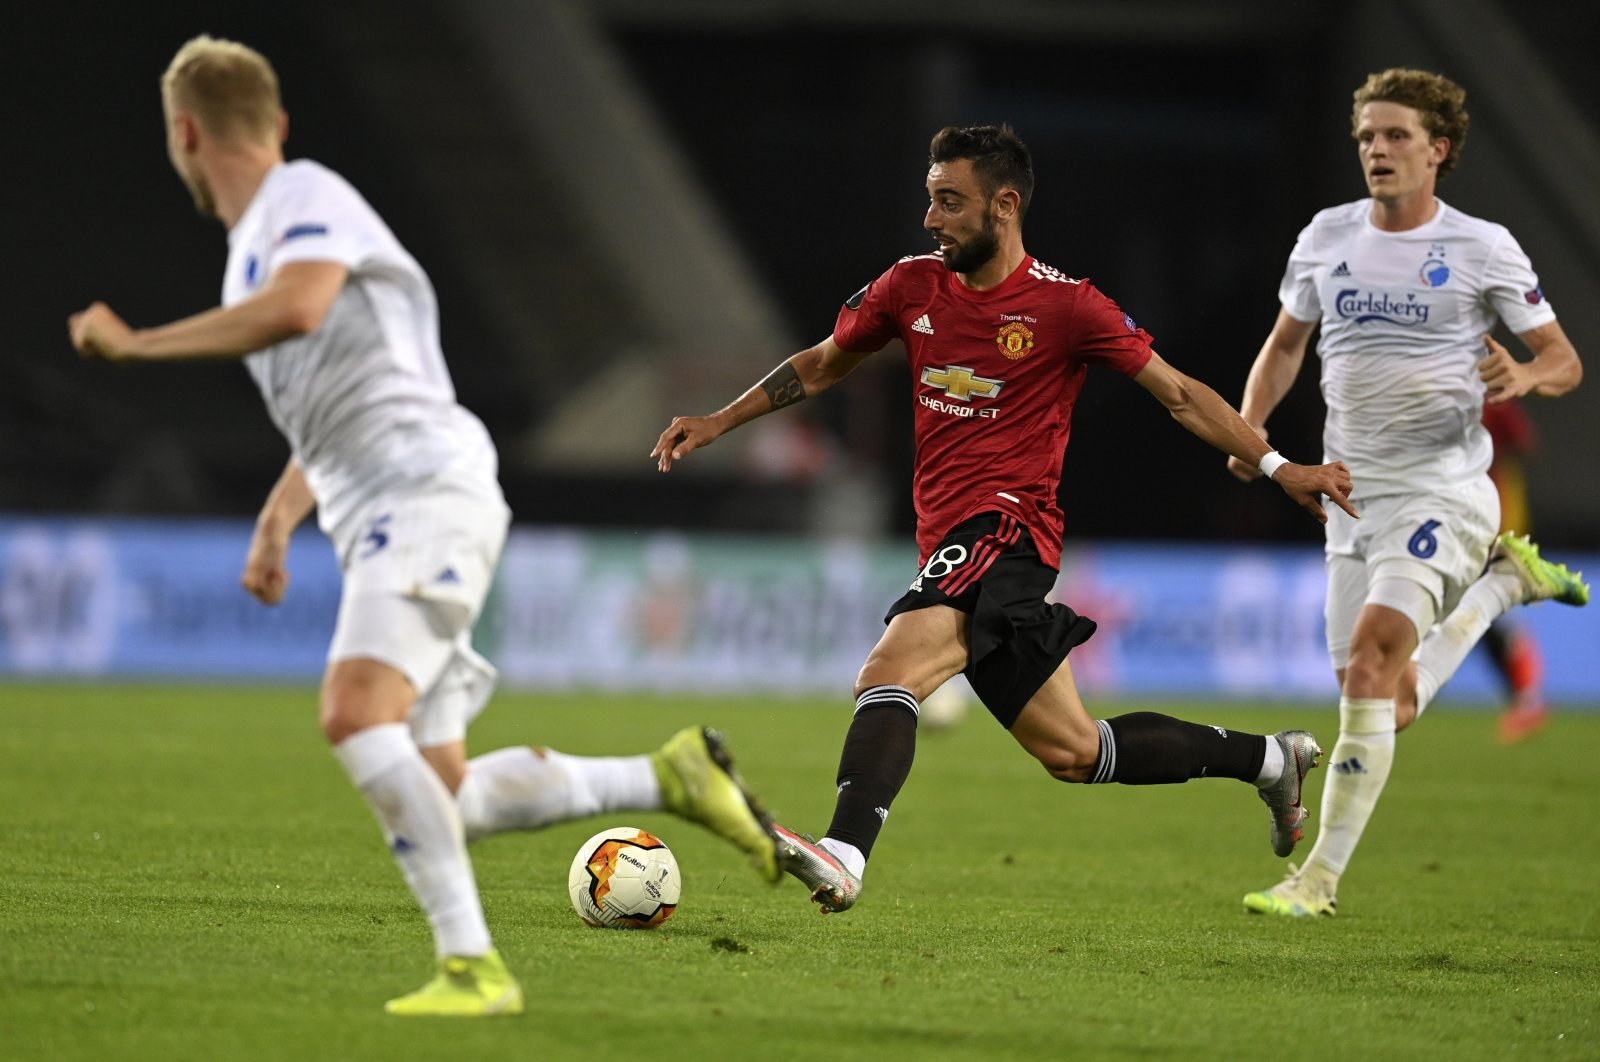 Manchester United's Bruno Fernandes, center, controls the ball during the Europa League quarter-final football match between Manchester United and Copenhagen at the Rhein Energie Stadium in Cologne, Germany, Monday, Aug. 10, 2020. (EPA via AP)